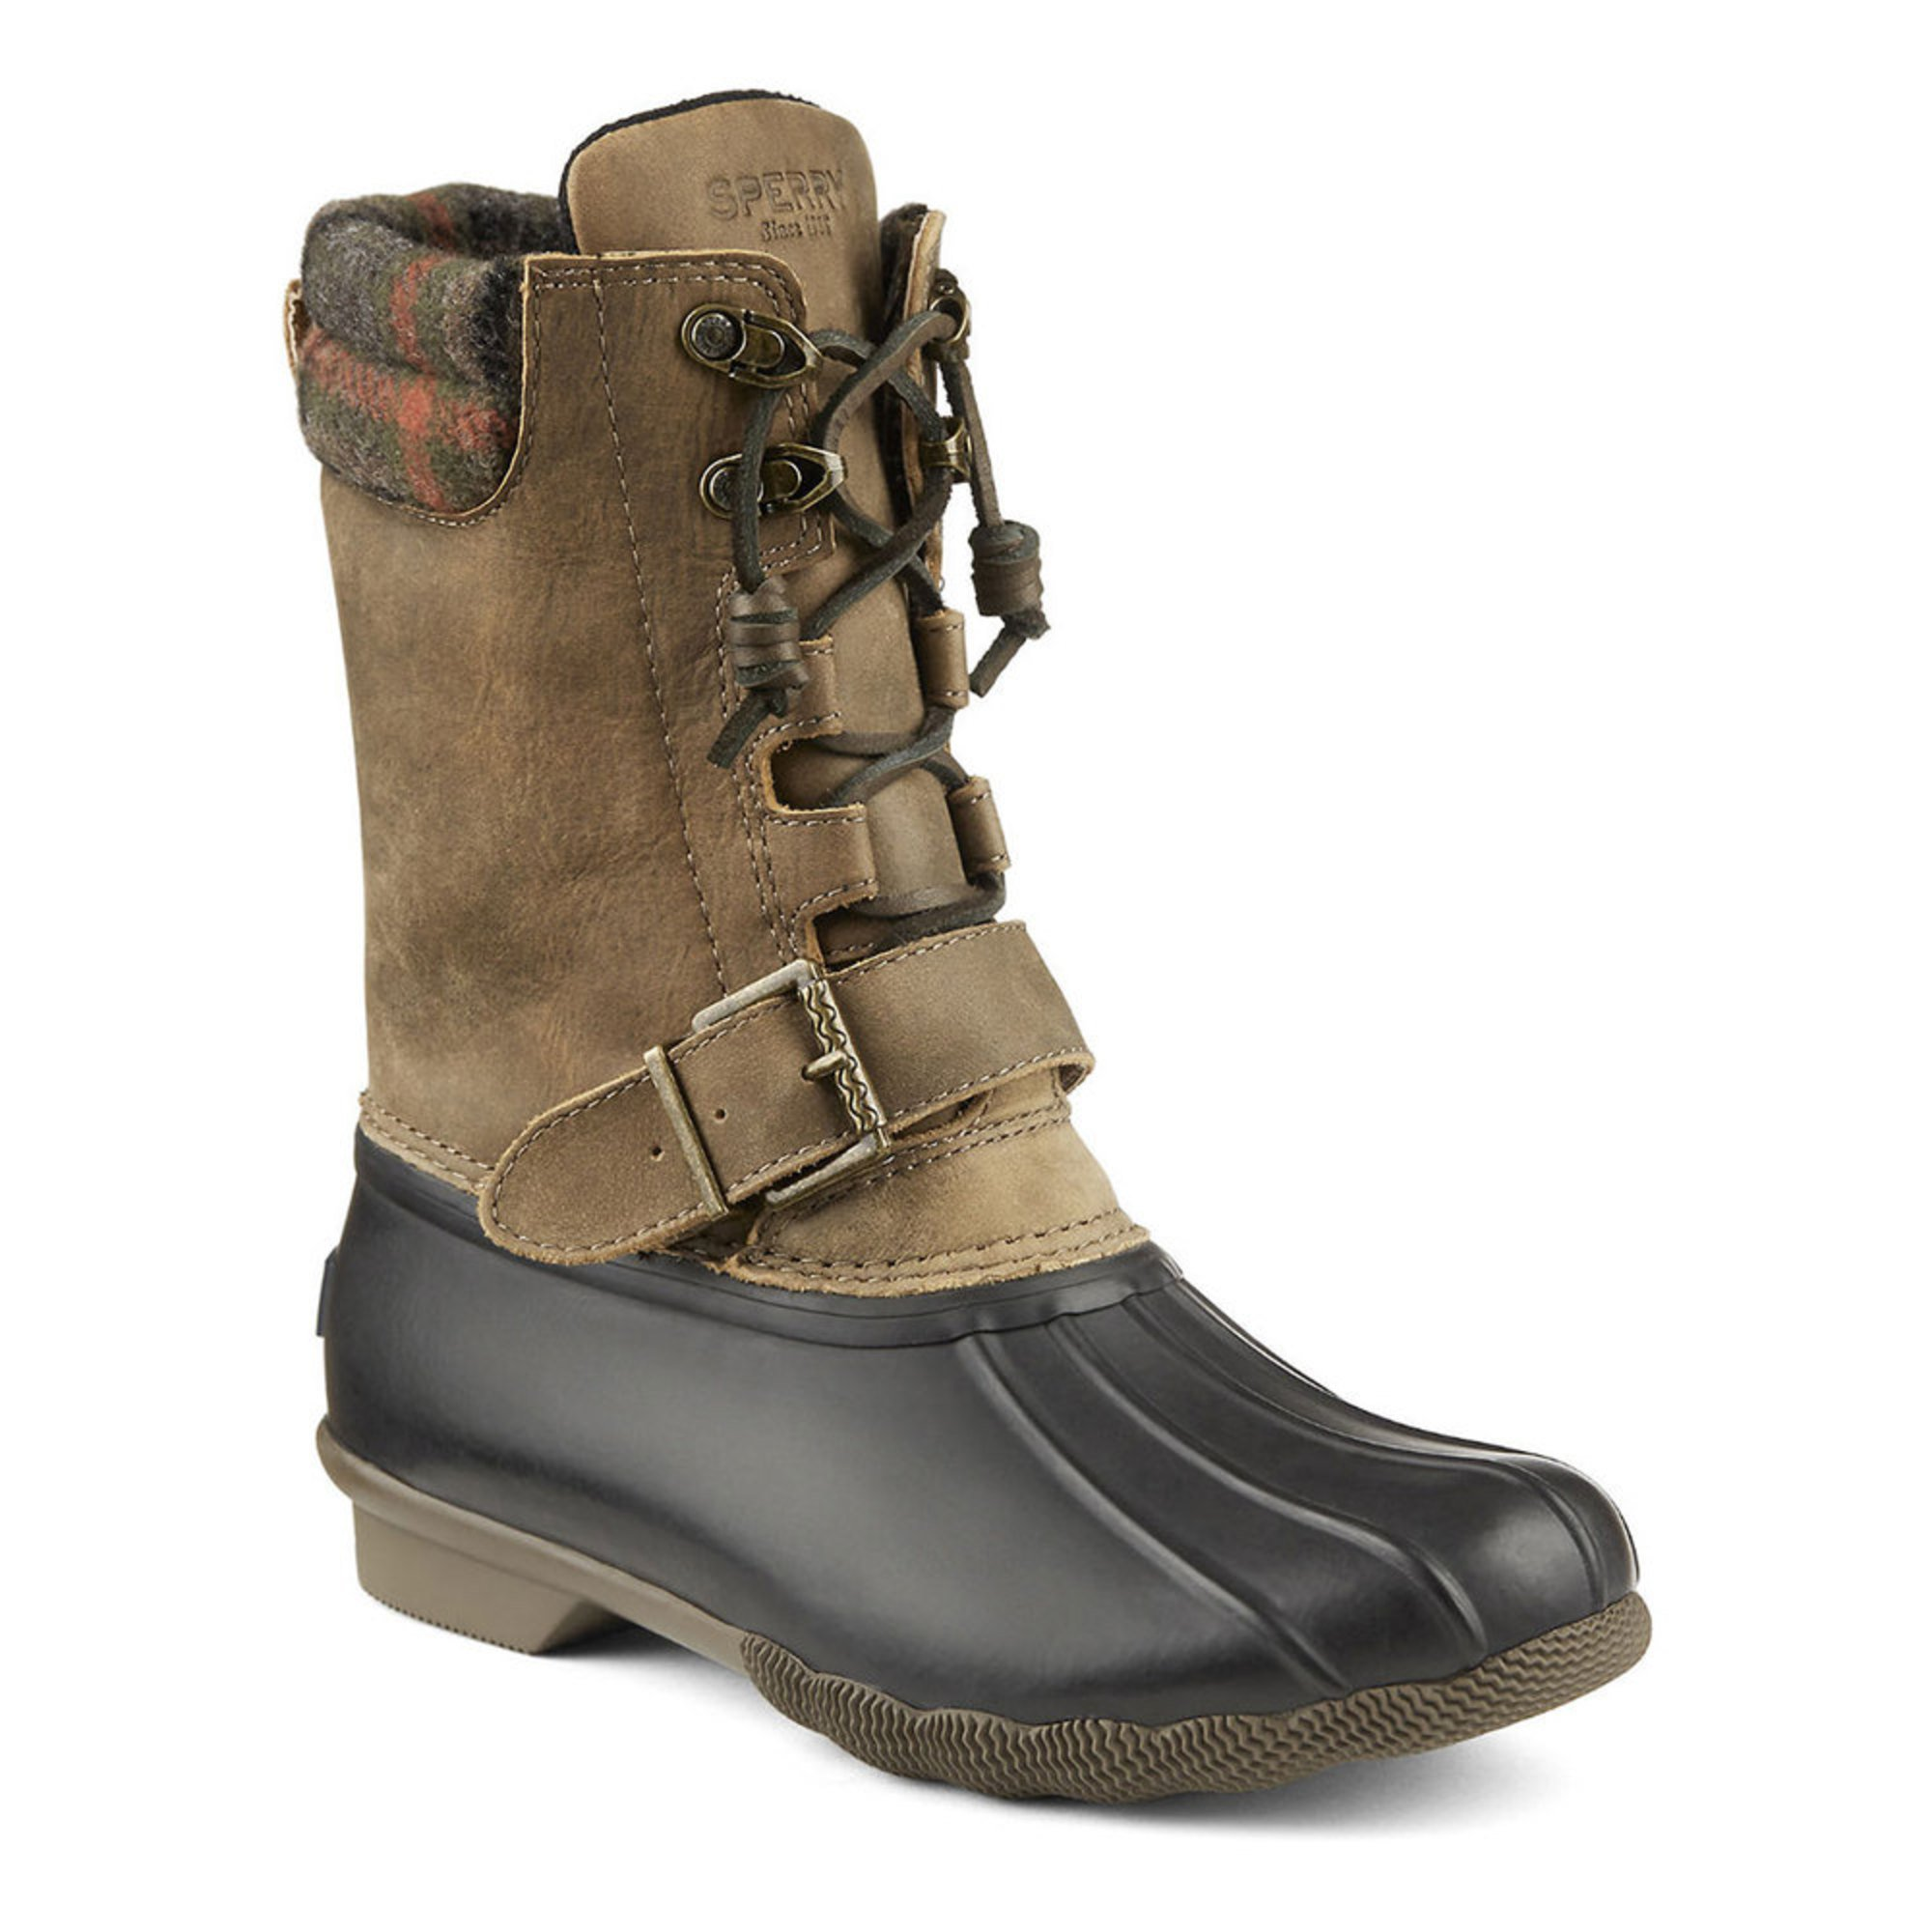 Beautiful  39 C9 By Champion Novie LaceUp Duck Boots  Tan  Target  Polyvore